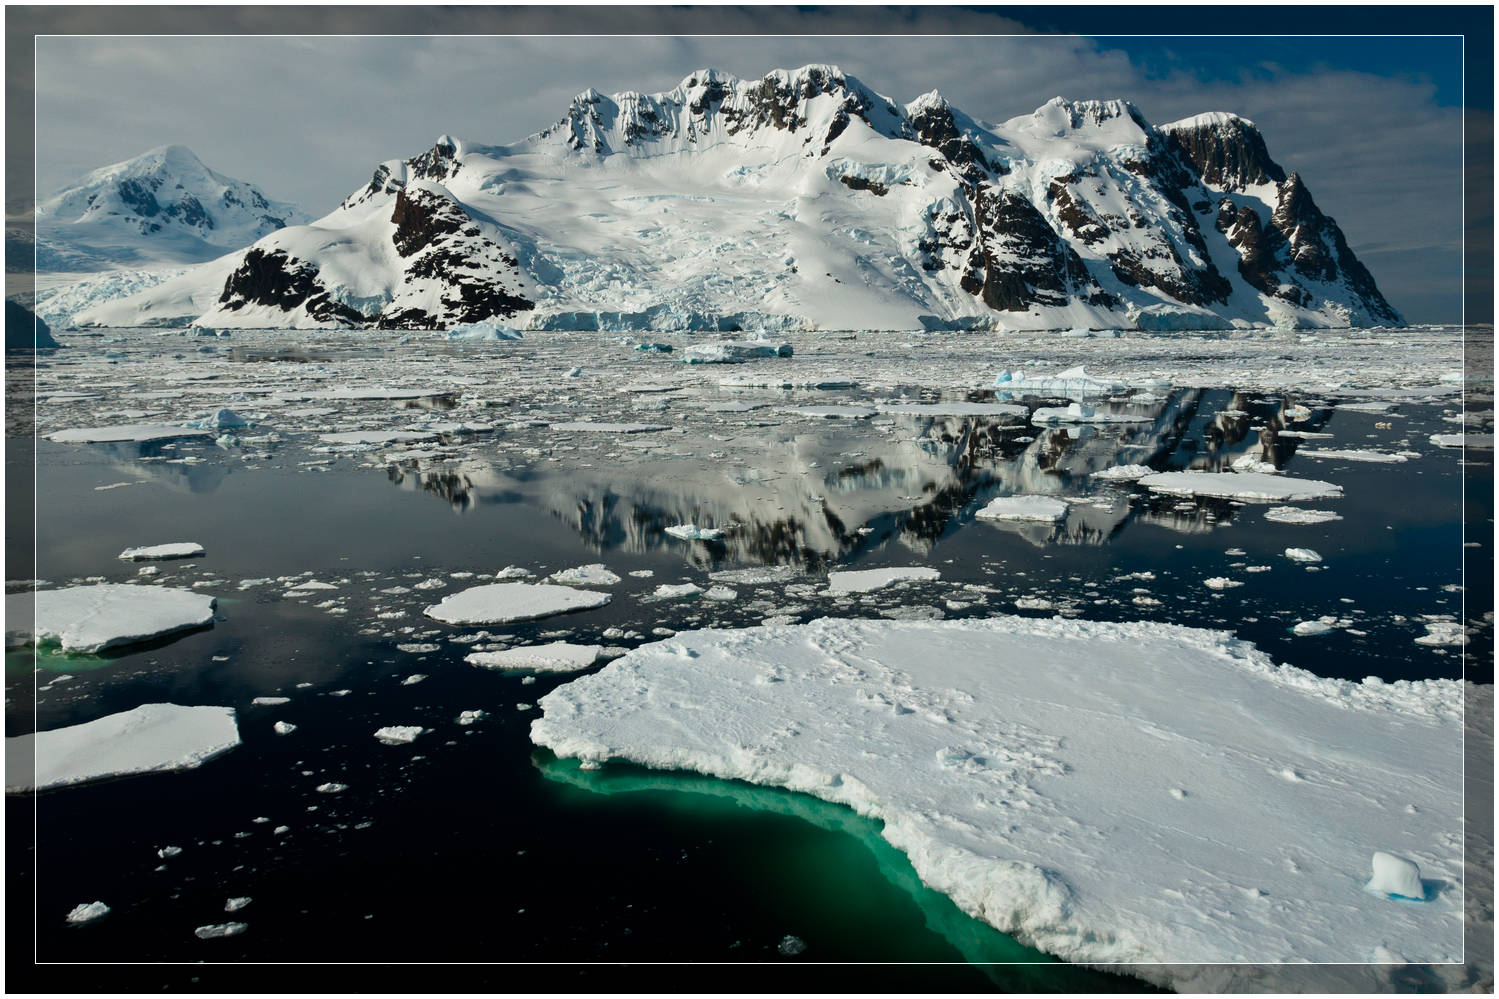 Antarctic Ice (c) Dustin Main 2010